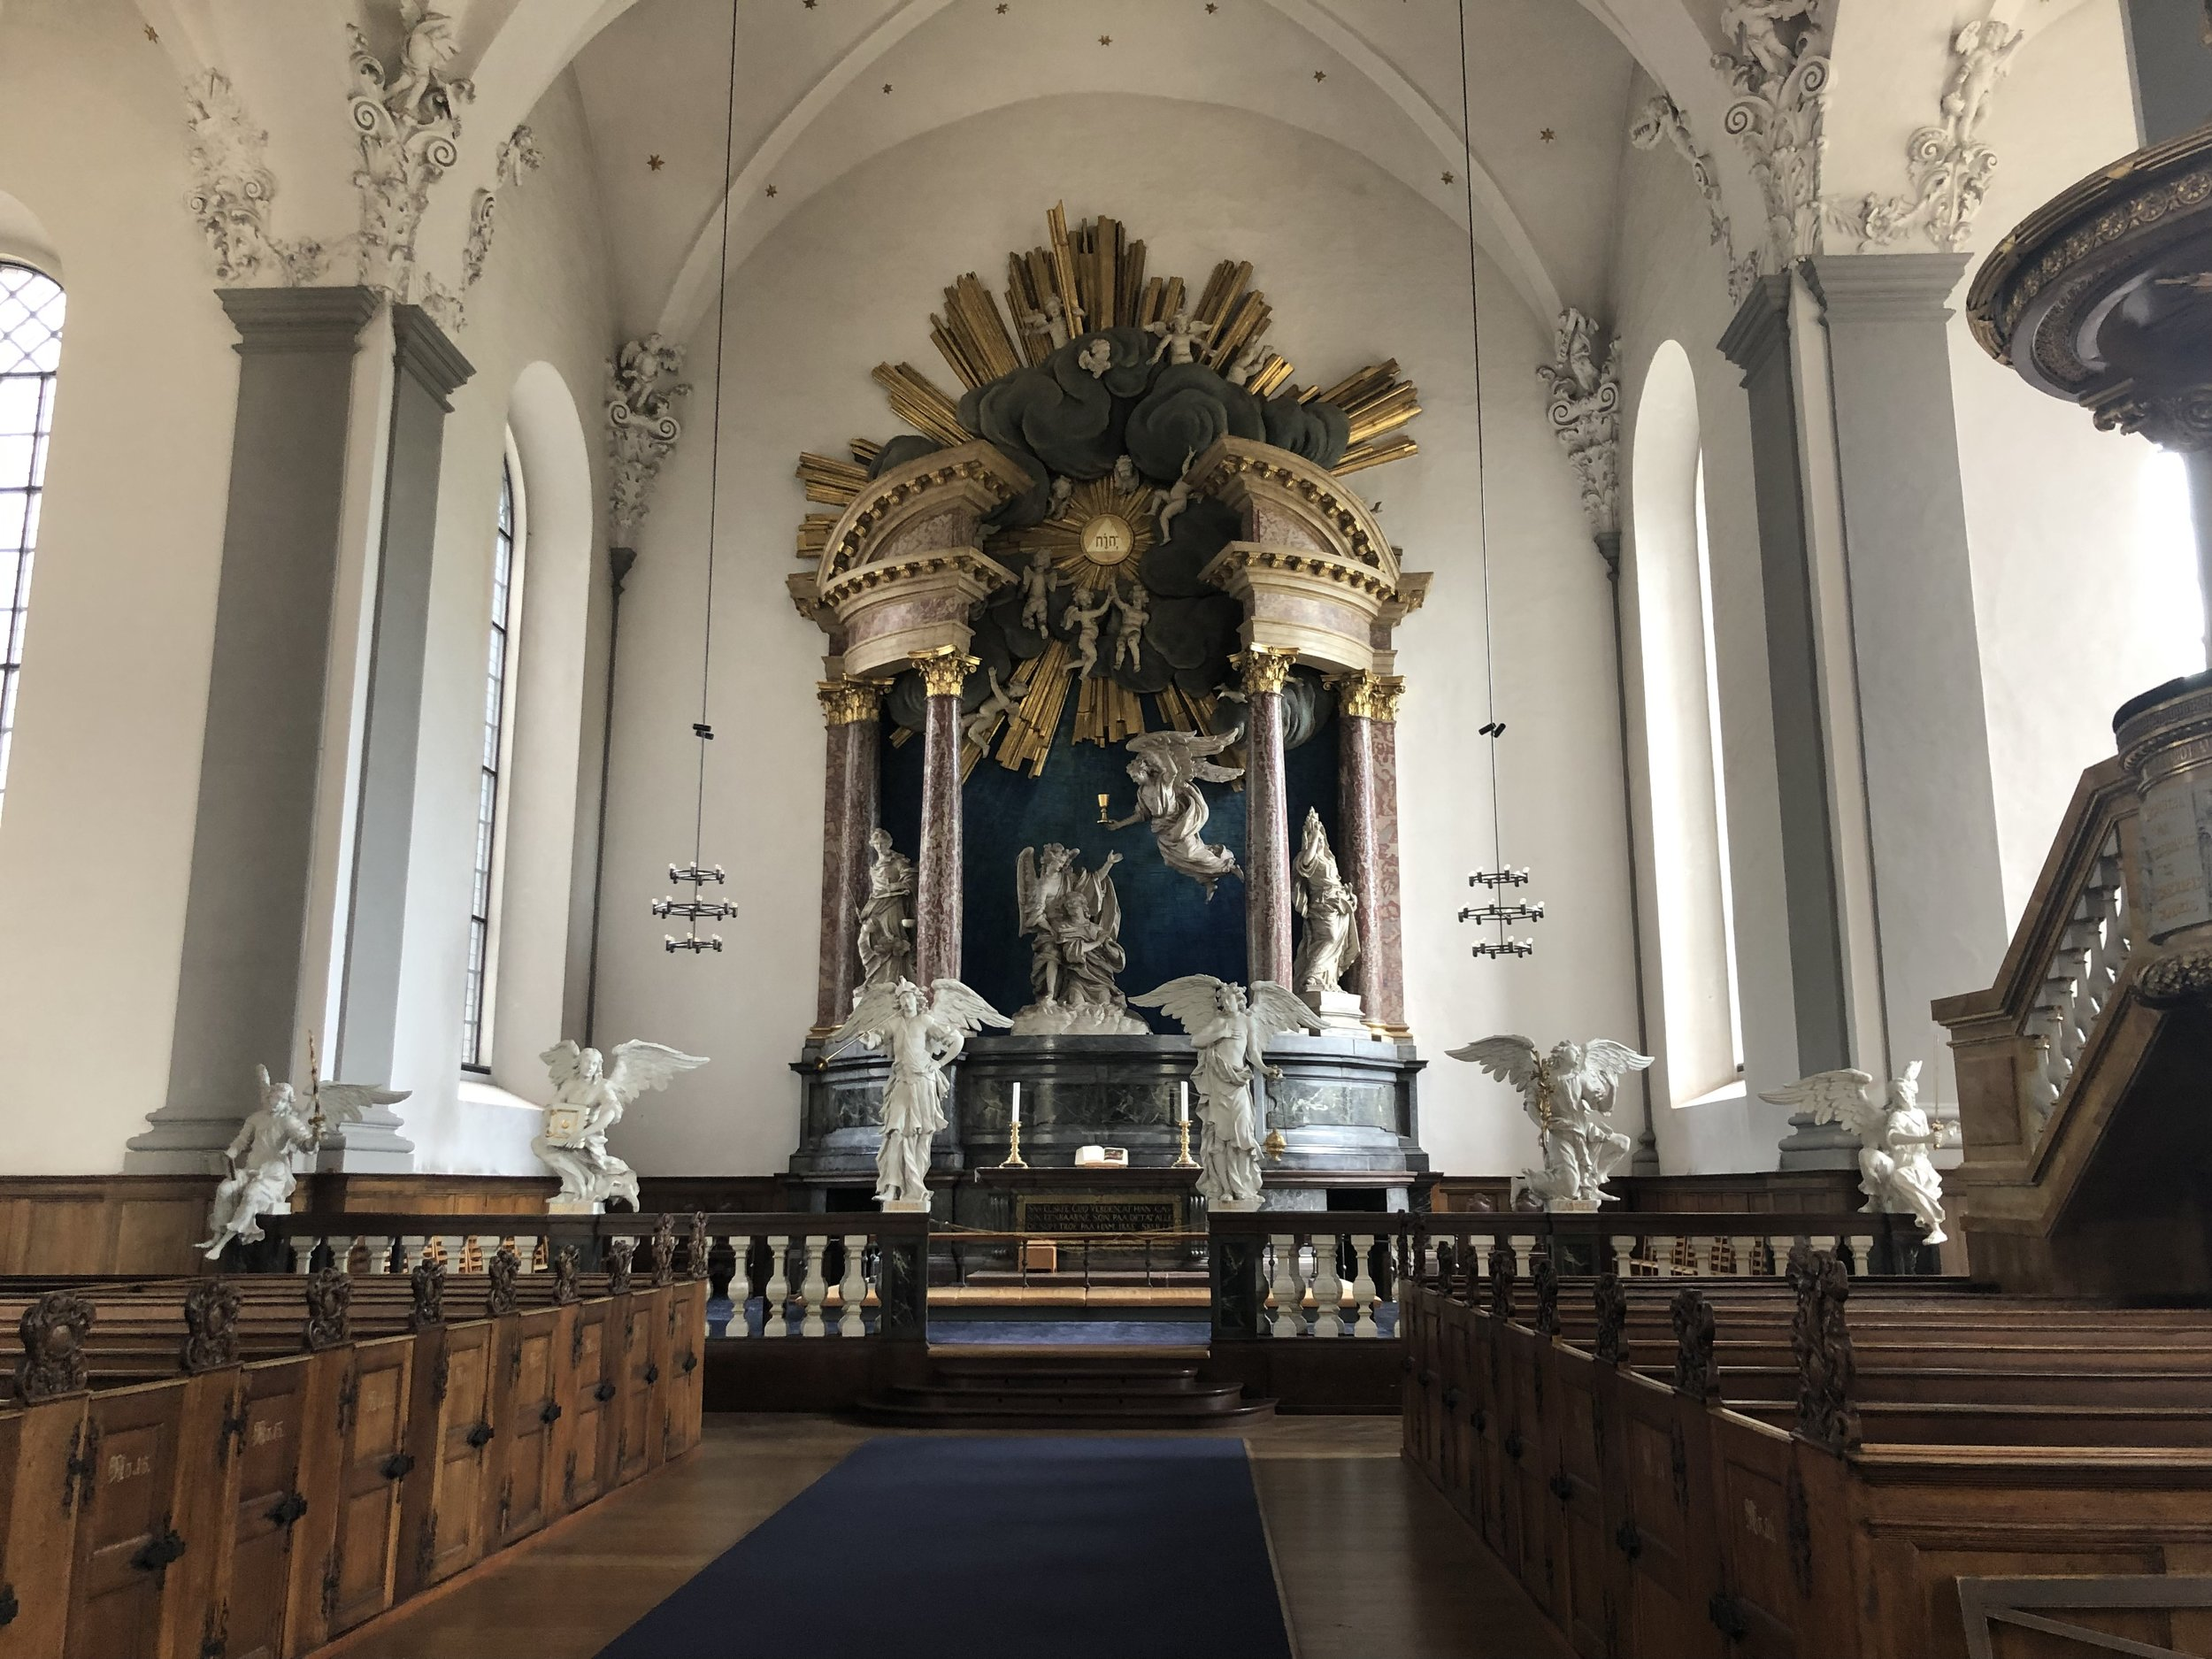 Inside of the church.